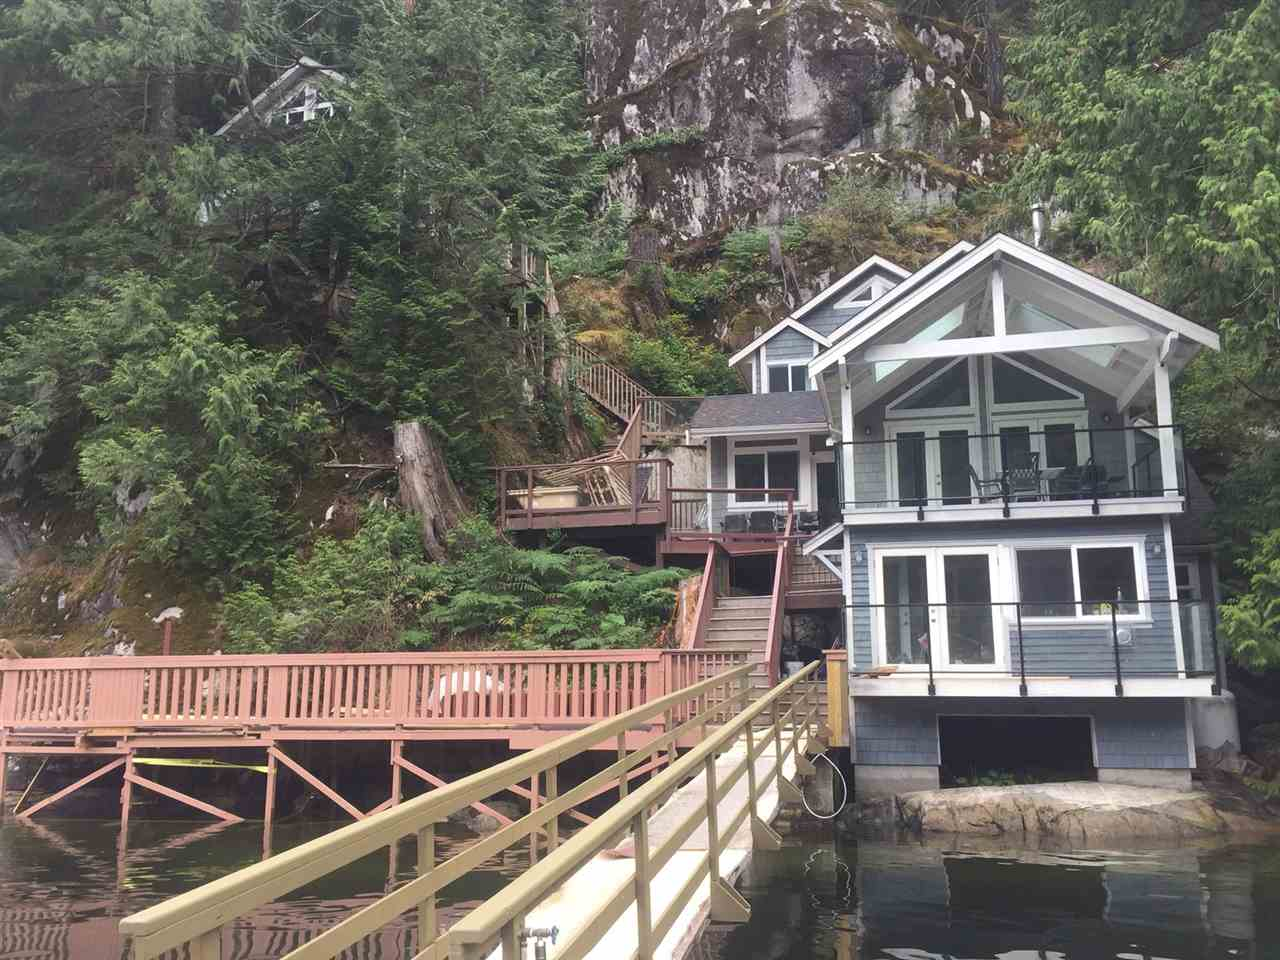 Marvelous serene waterfront home is truly an amazing get-away w/breathtaking views of Indian Arm, yet its just 25 min to the city! Picture yourself swimming in the ocean, reading in the sun, fishing off the dock or hosting a BBQ on large deck overlooking your 107 ft of waterfront shore! This property includes a beautifully finished, air conditioned, 3 bed, 2.5 bath & den home w/vaulted ceiling & spacious rooms PLUS a detached guest house just waiting for your creative imagination to finish inside! Direct access from your private boat dock! This lovely home has been completely rebuilt from foundation up, with permits, a home for all seasons! Value is unbelievable at this price! A MUST SEE! Pls make appt. Access by boat only.